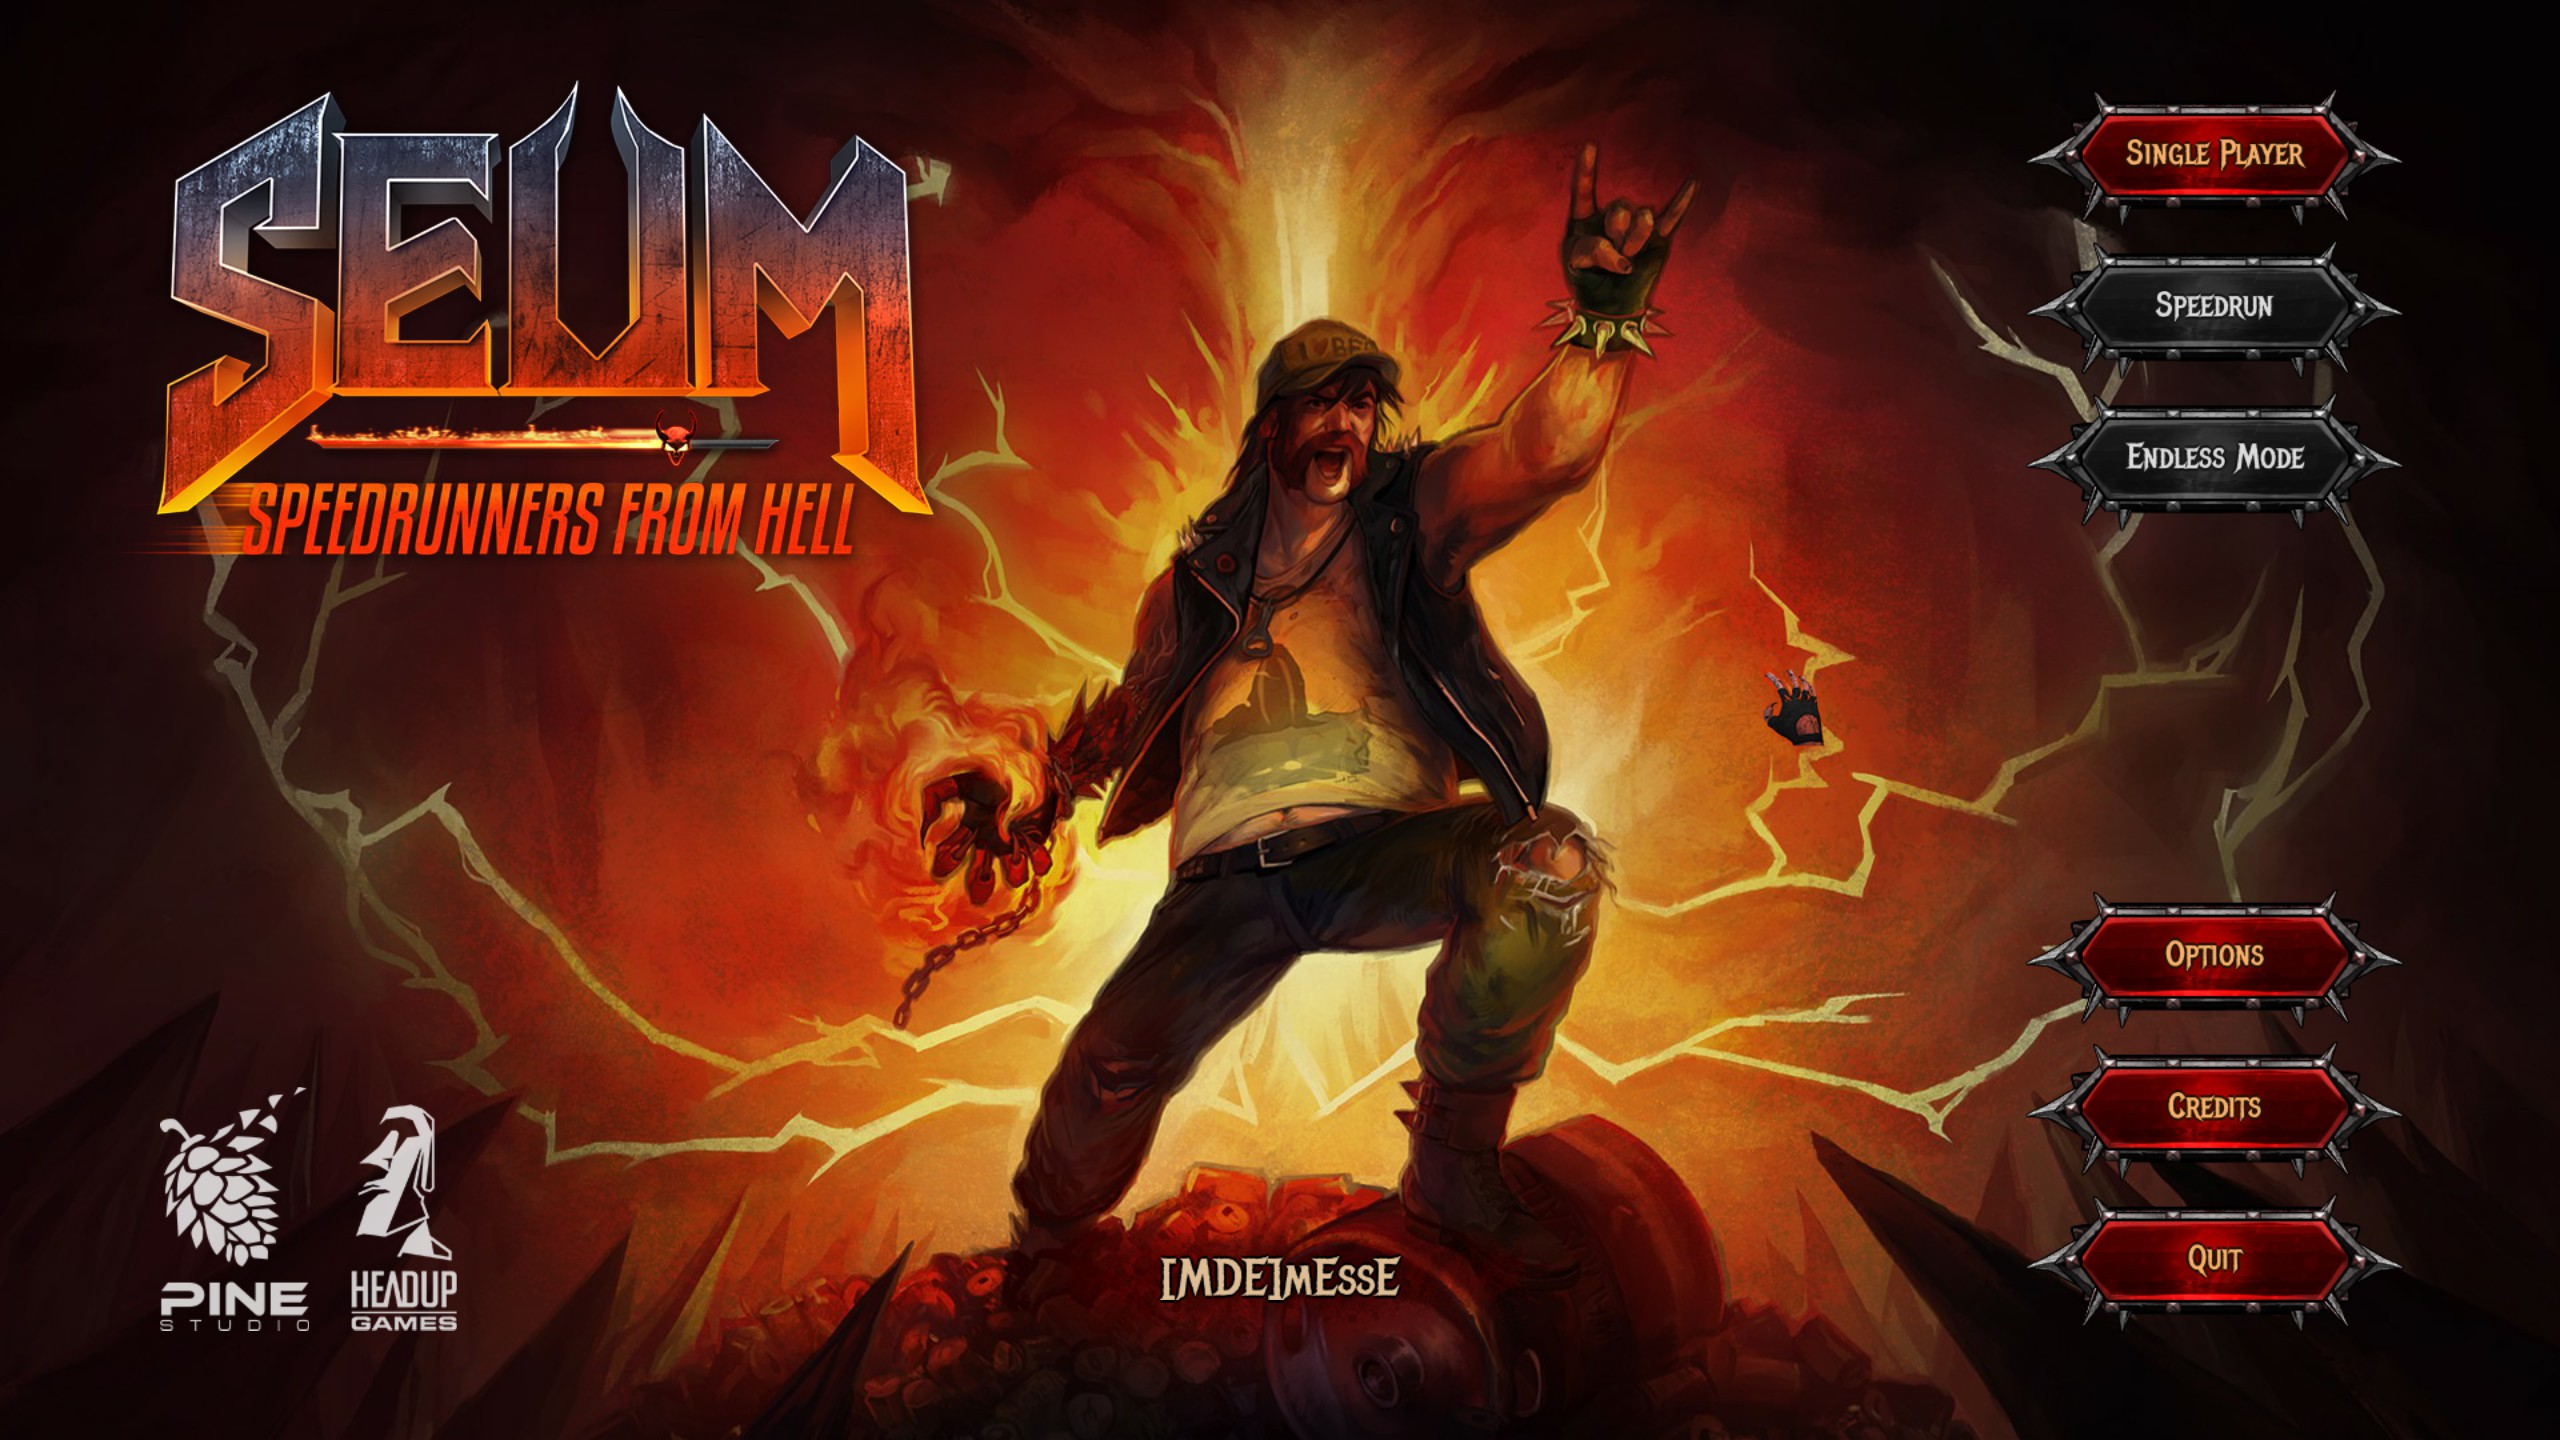 seum speedrunners from hell (1)